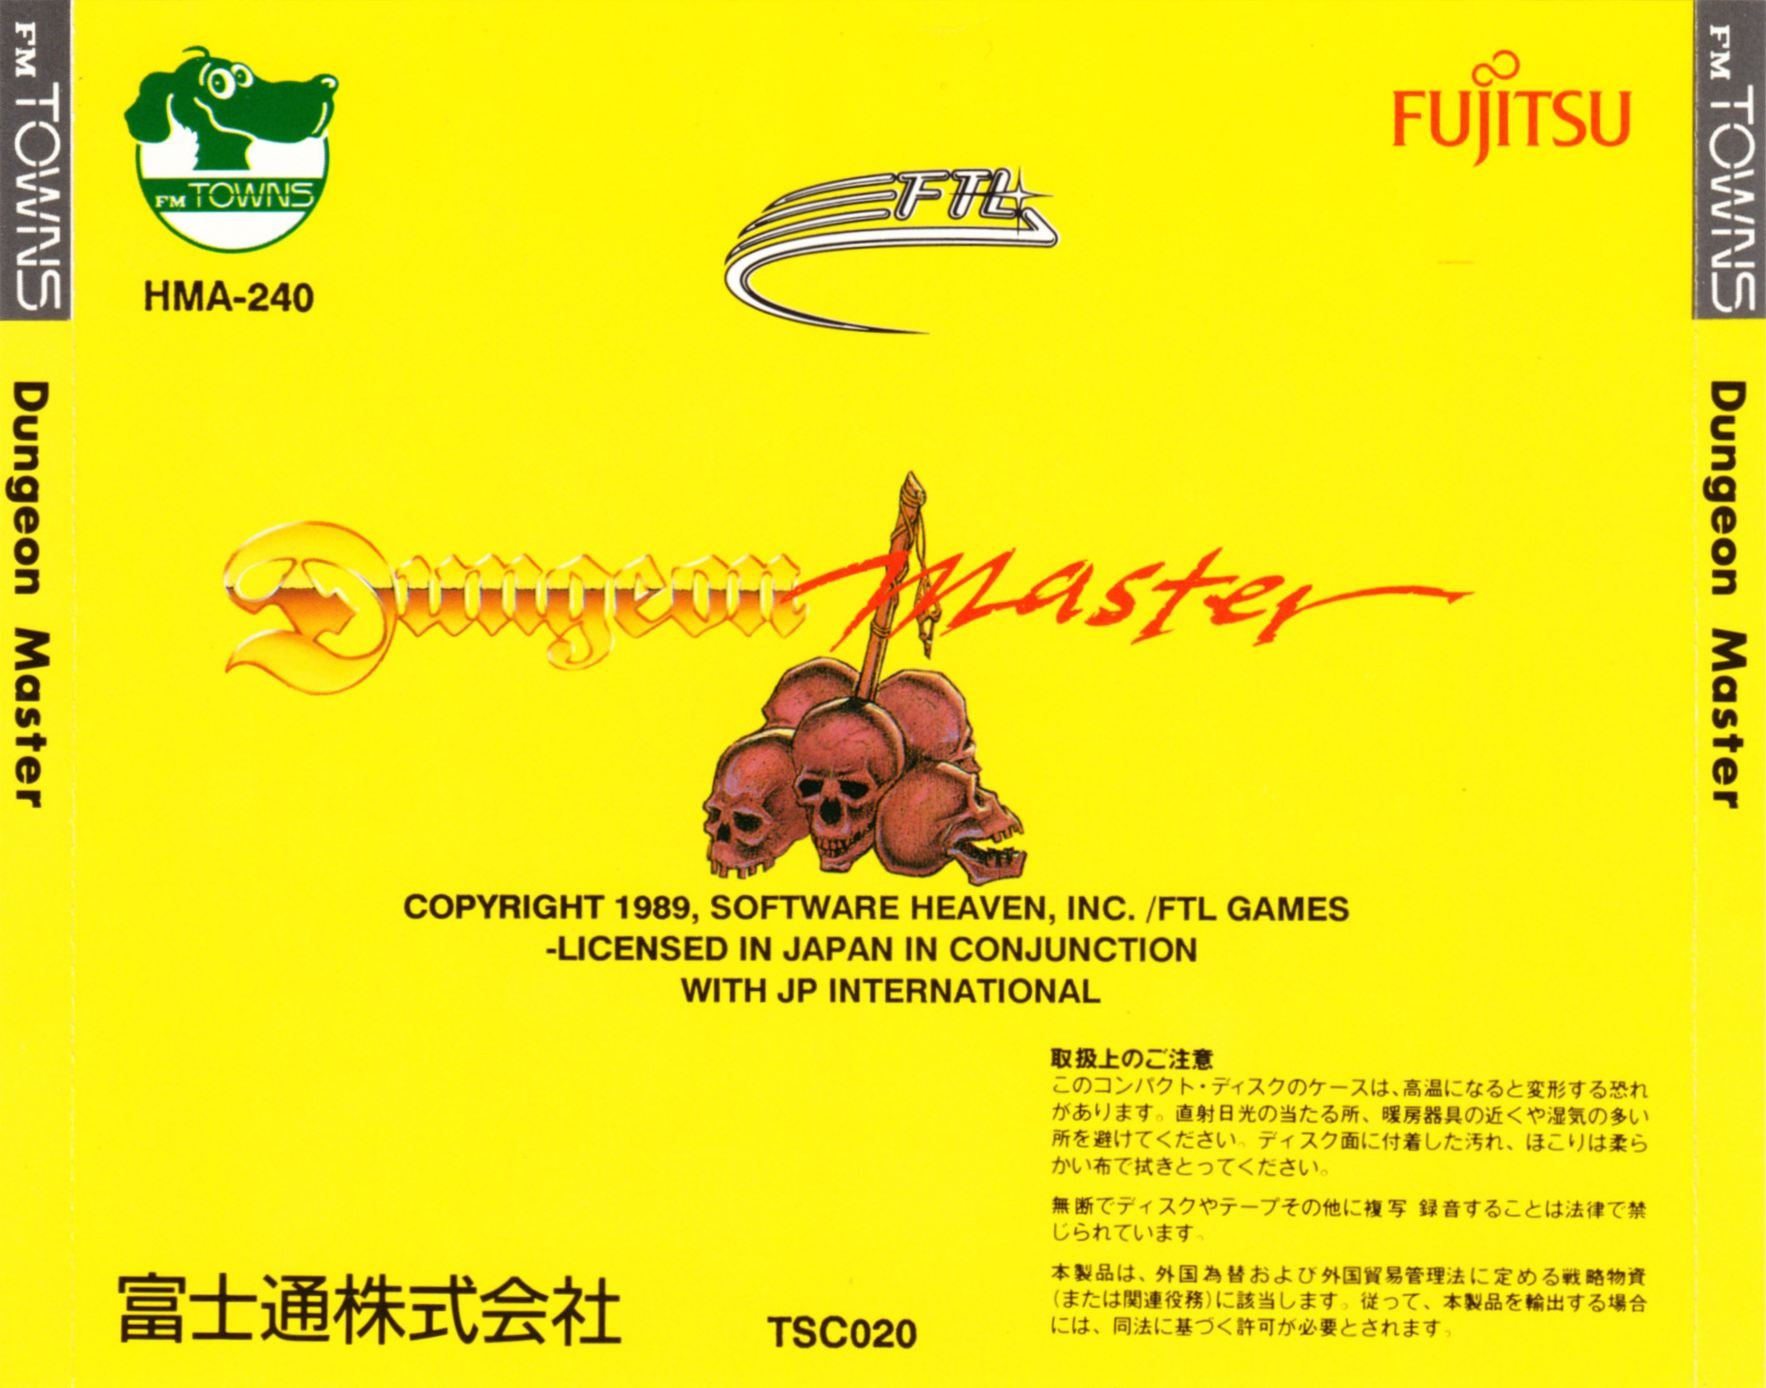 Game - Dungeon Master - JP - FM Towns - Back Card - Front - Scan